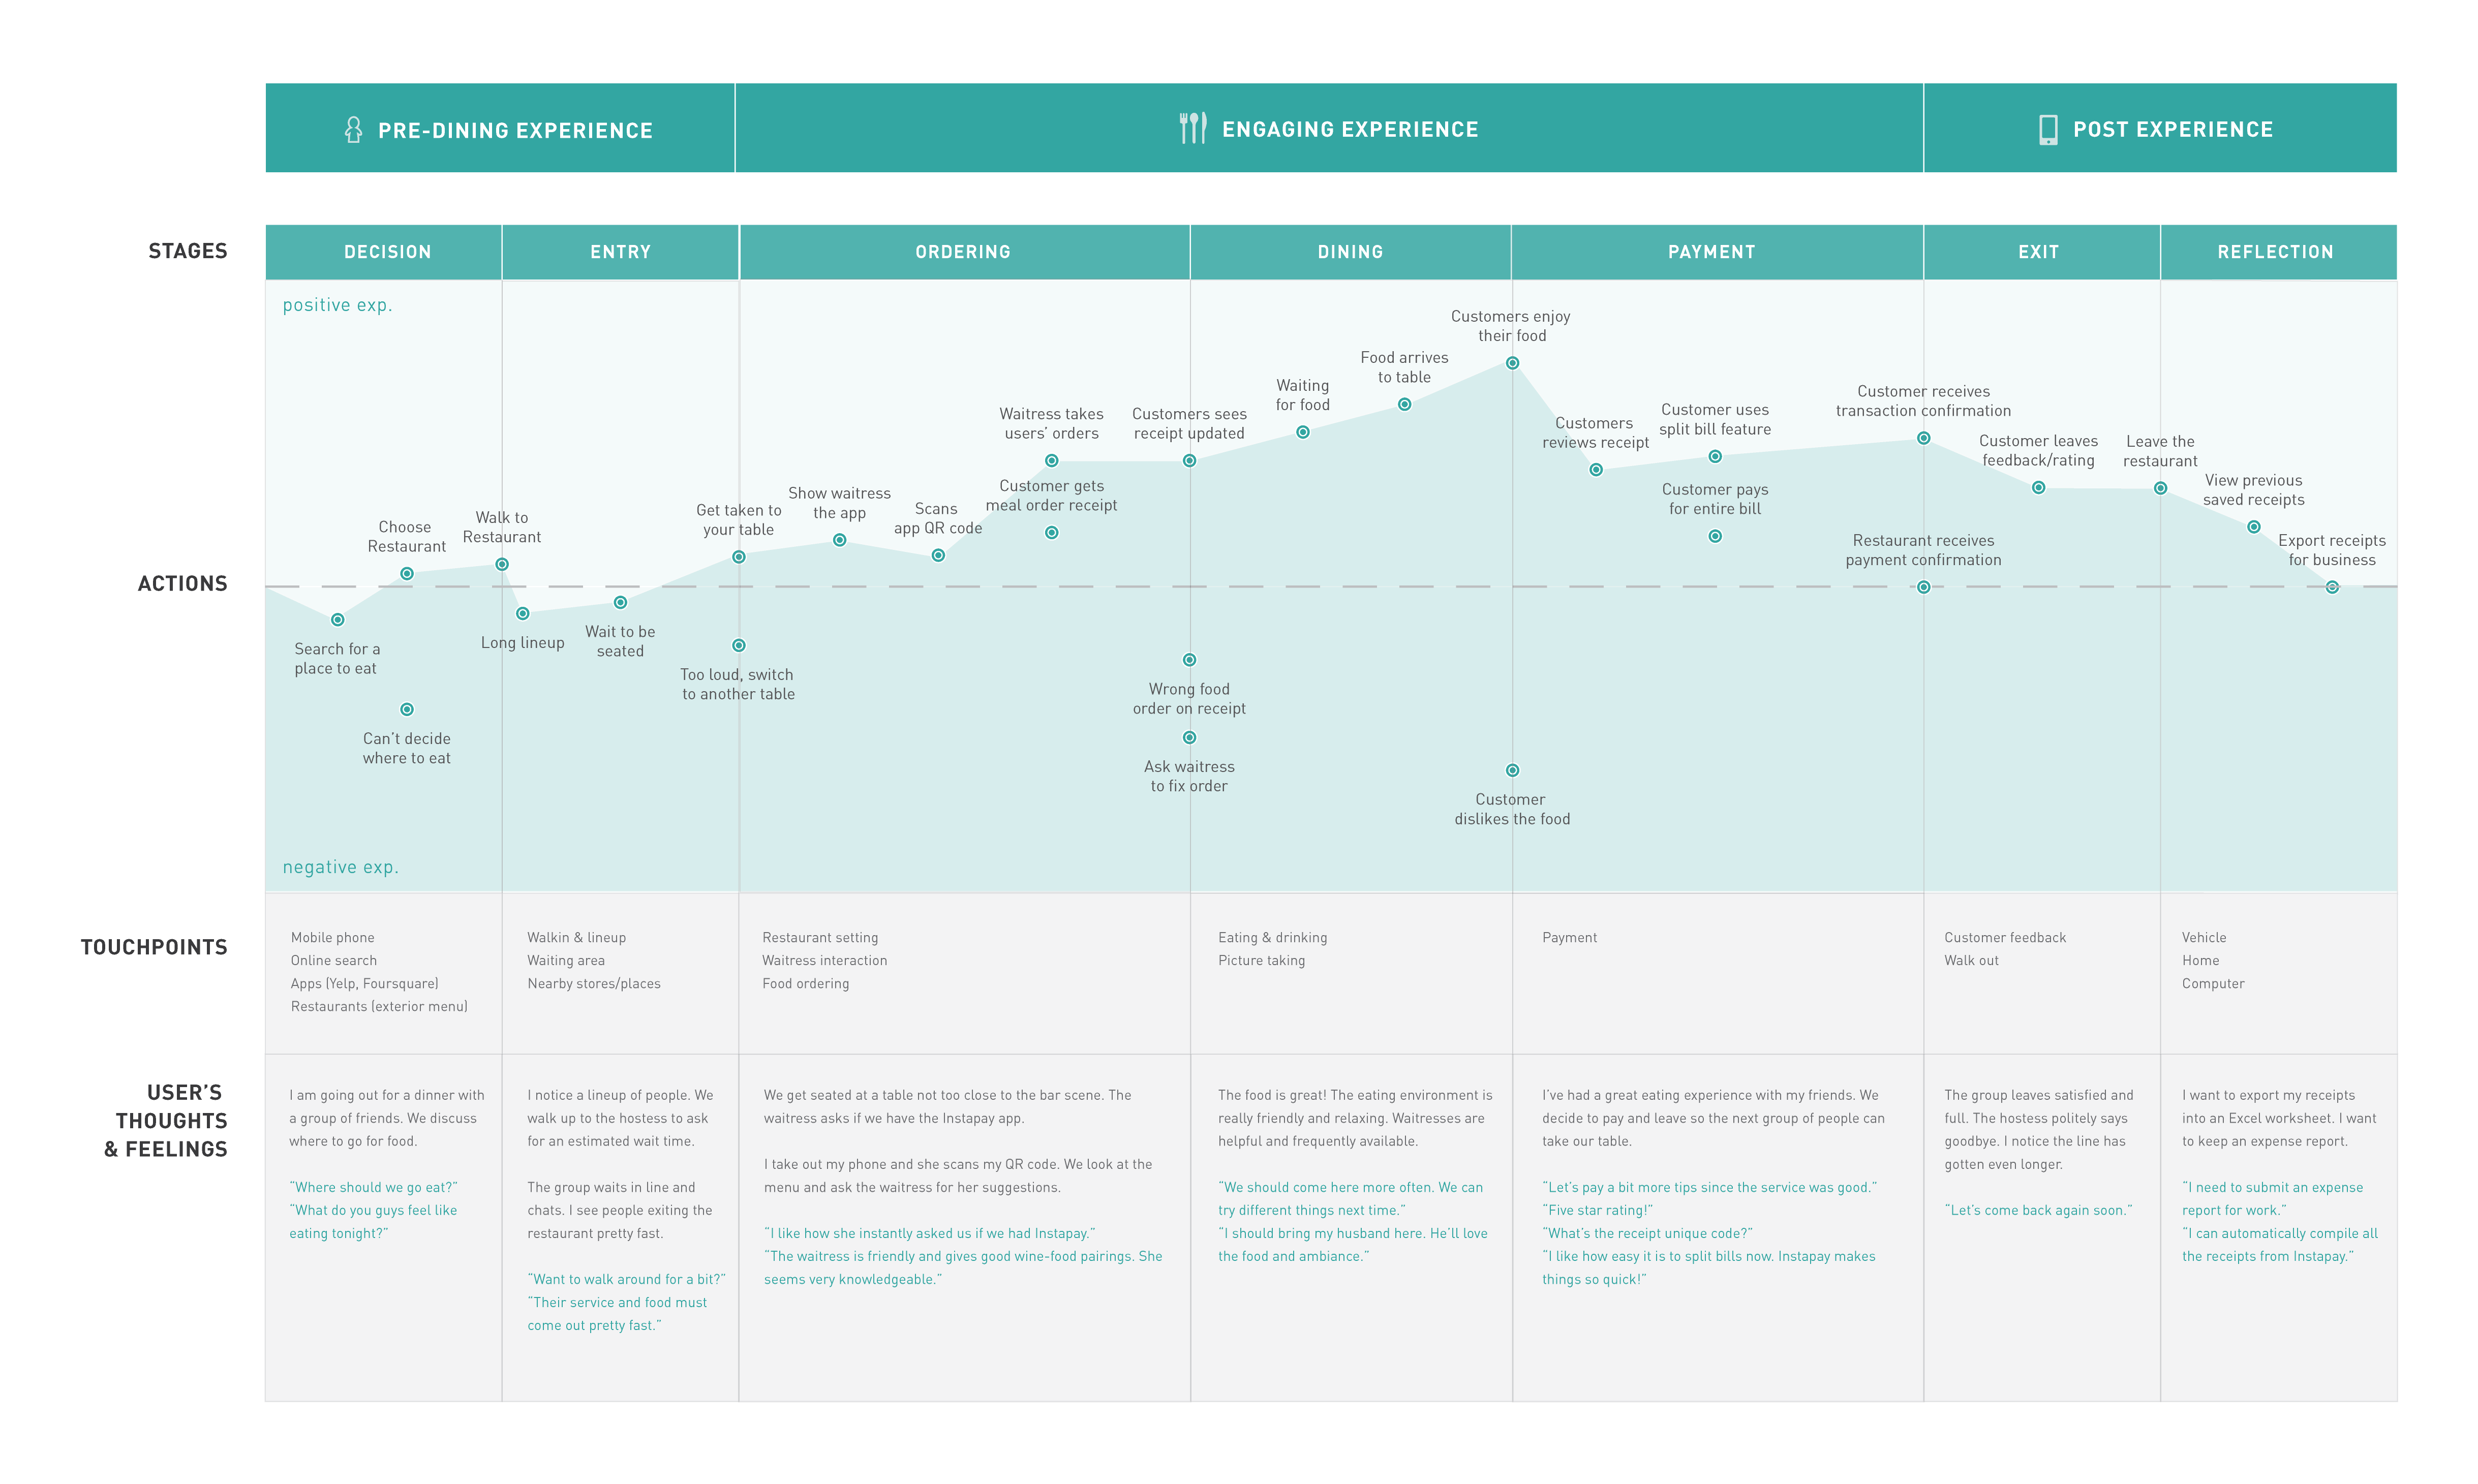 User journey diagram